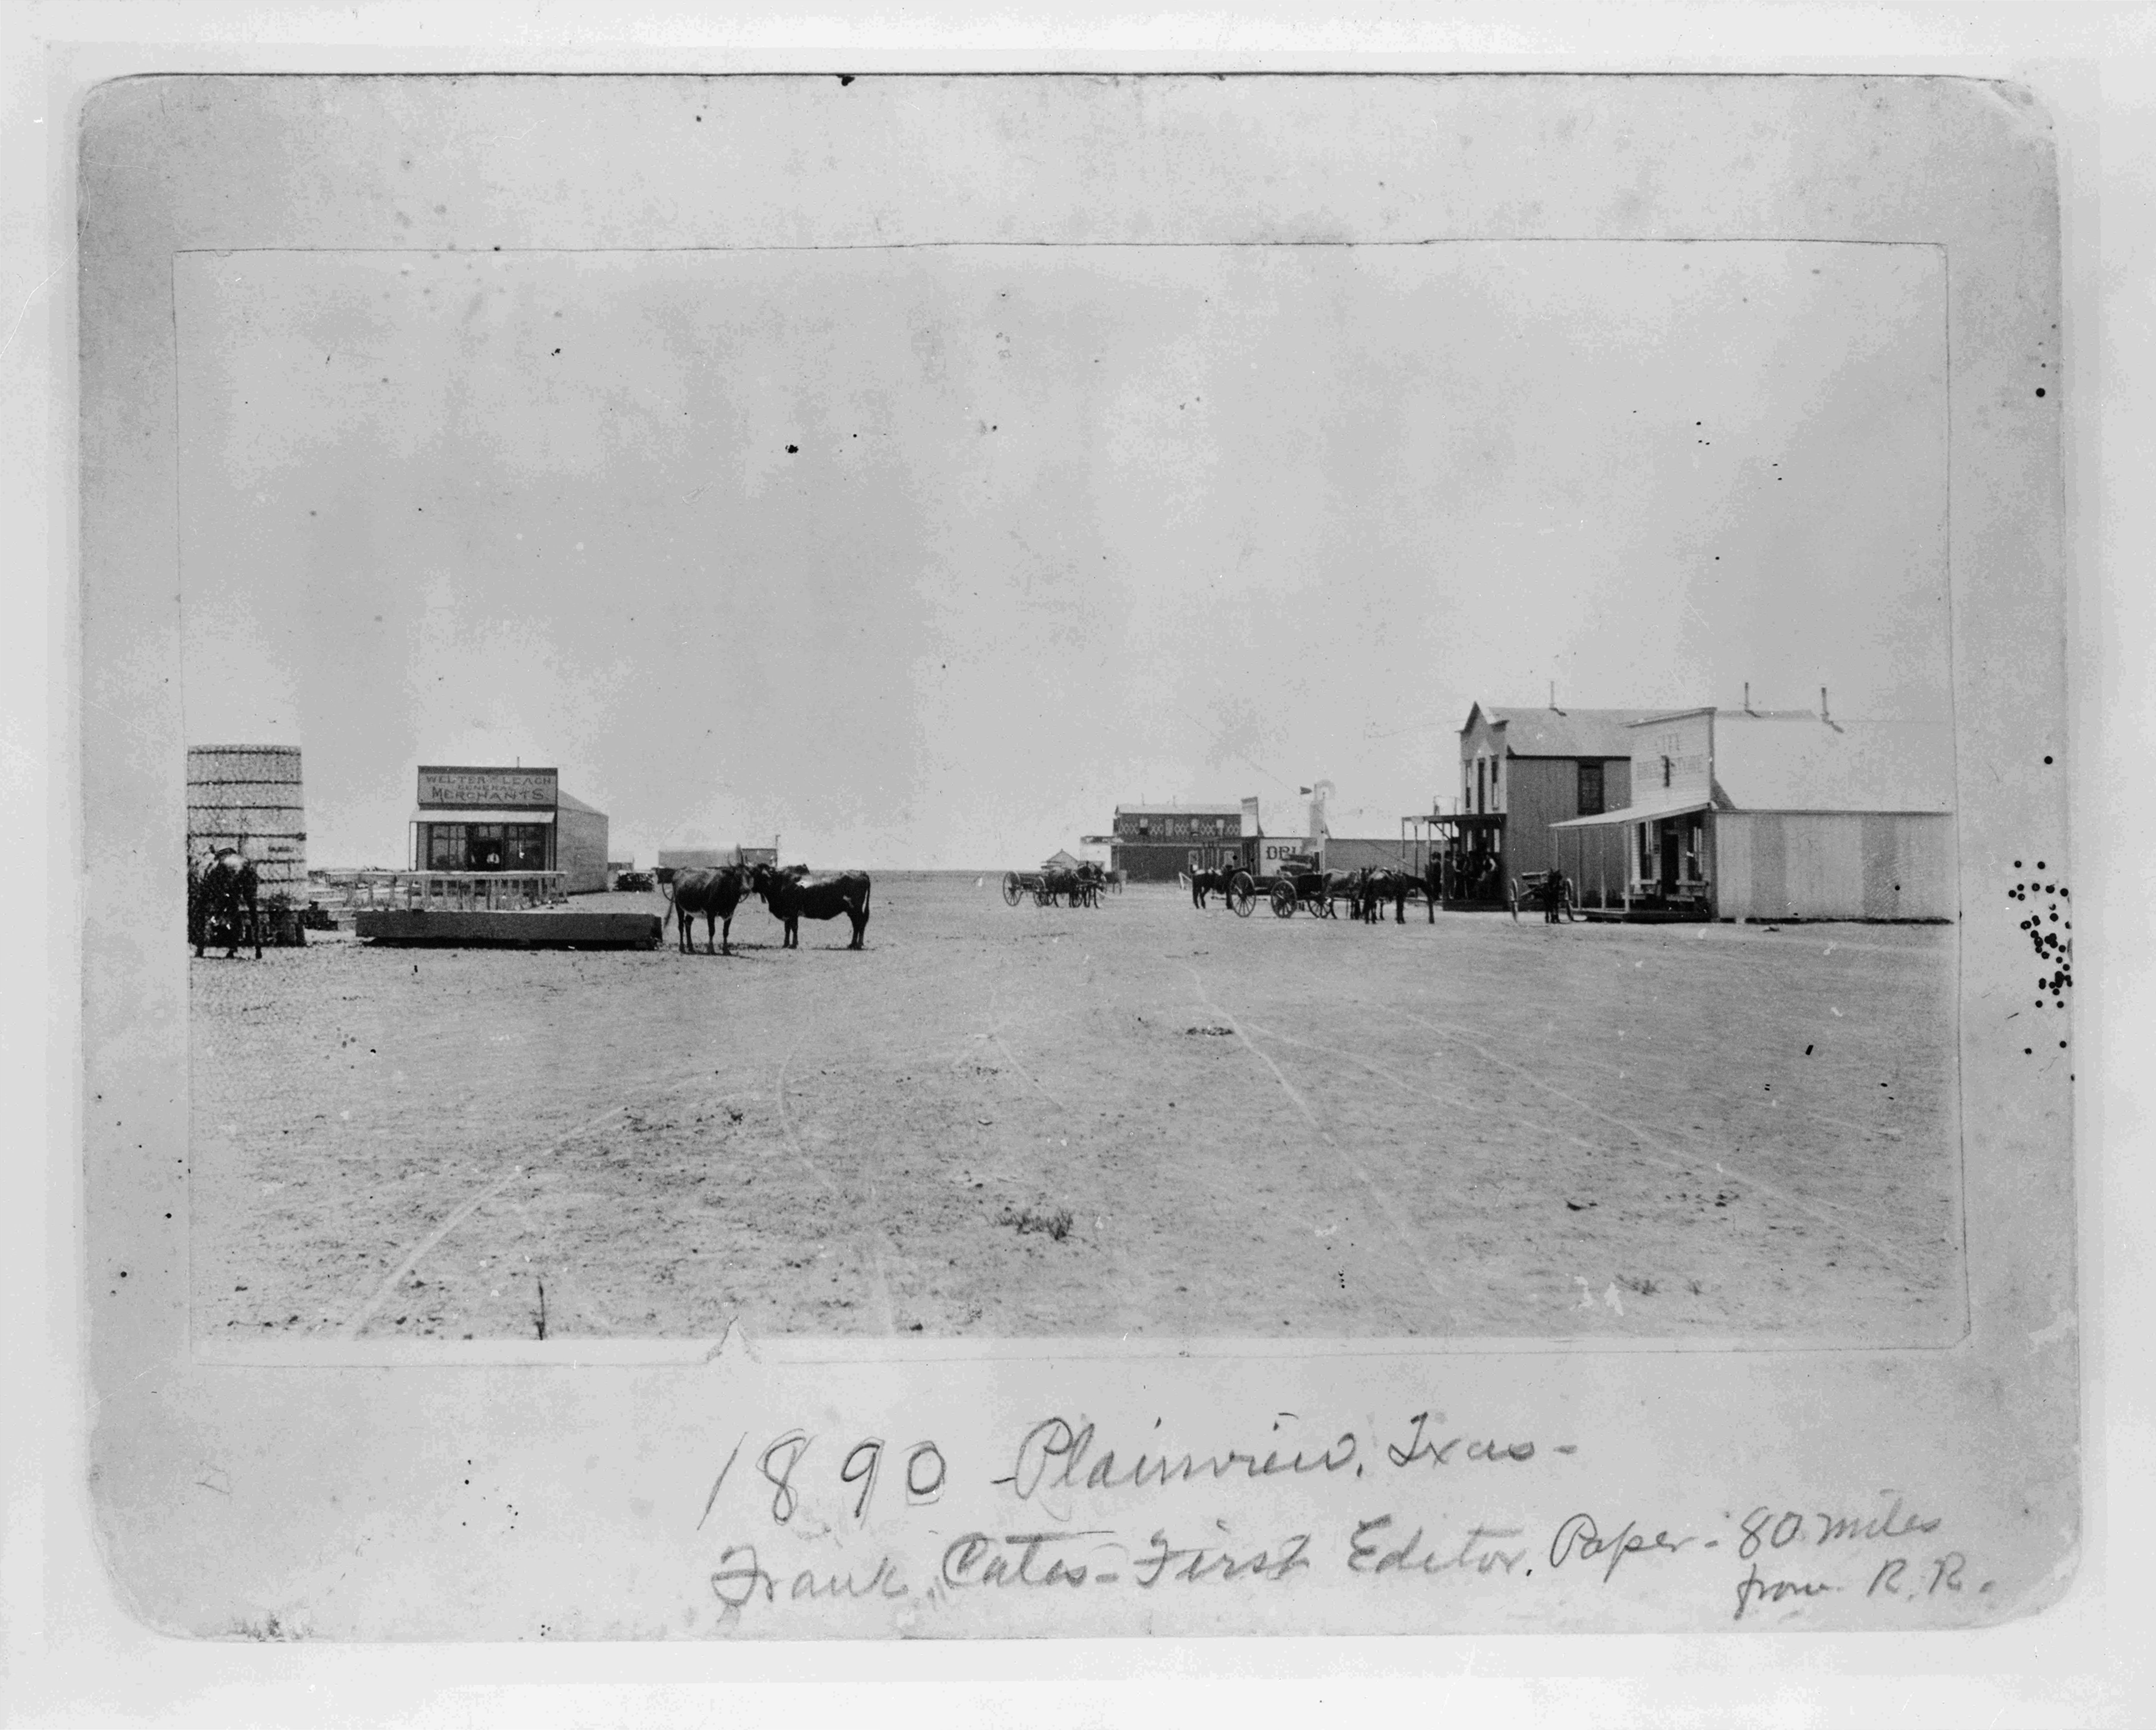 Plainview Texas 1890 Via Texas State Library And Archives This